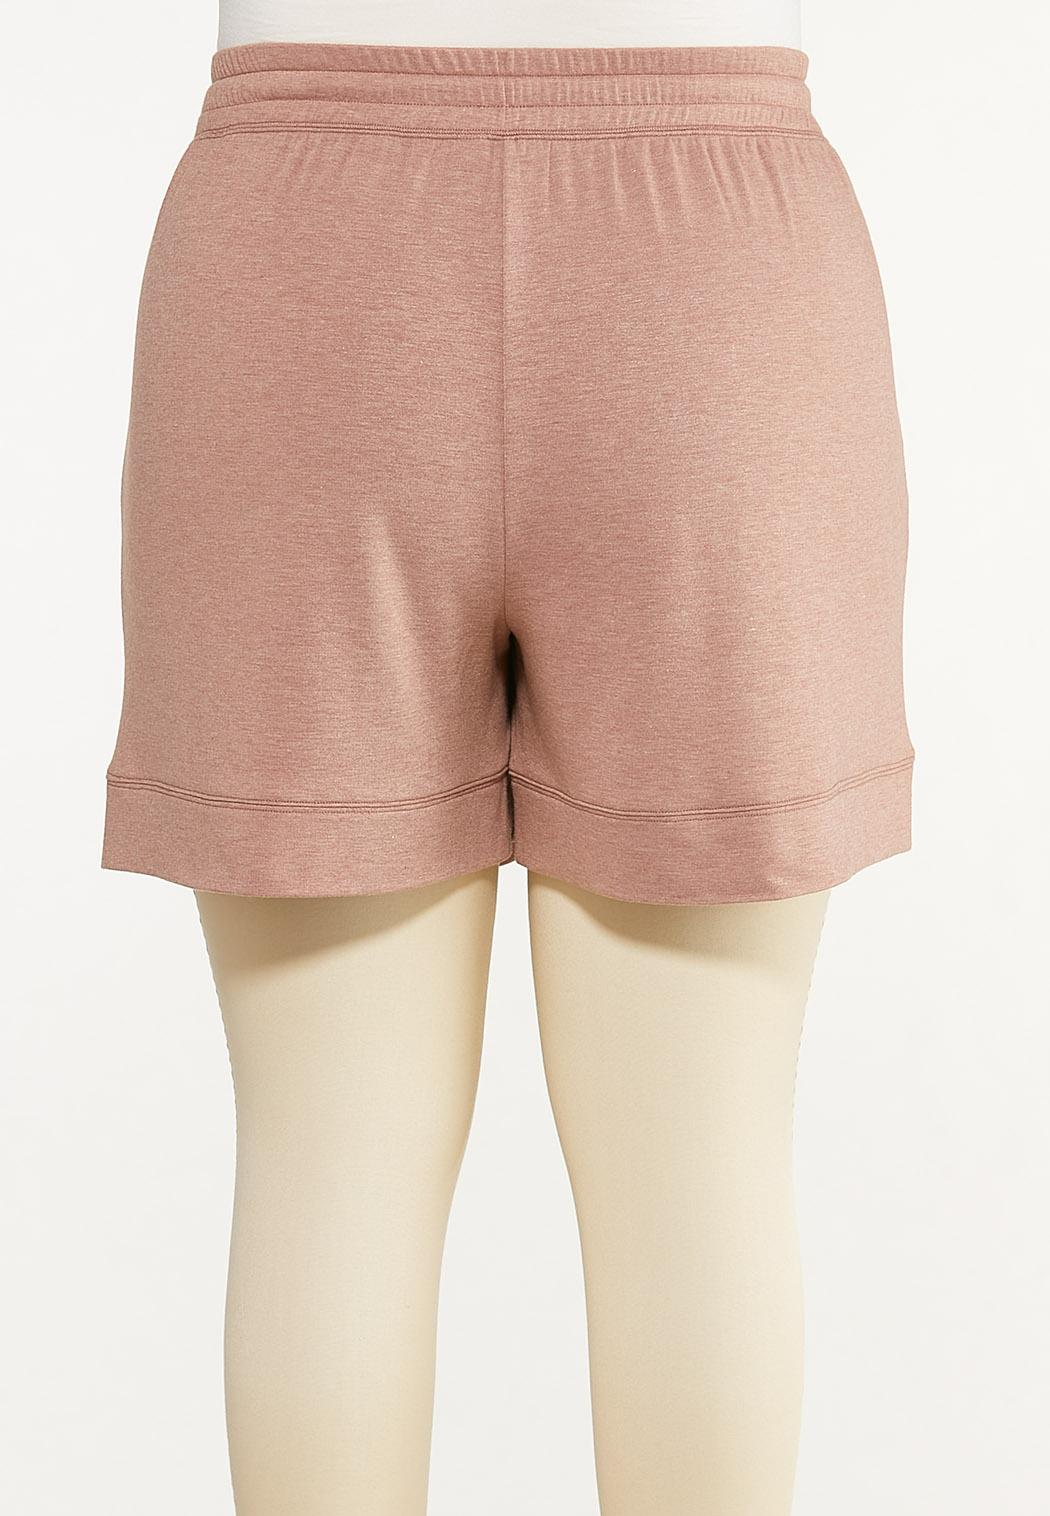 Plus Size French Terry Shorts (Item #44613274)